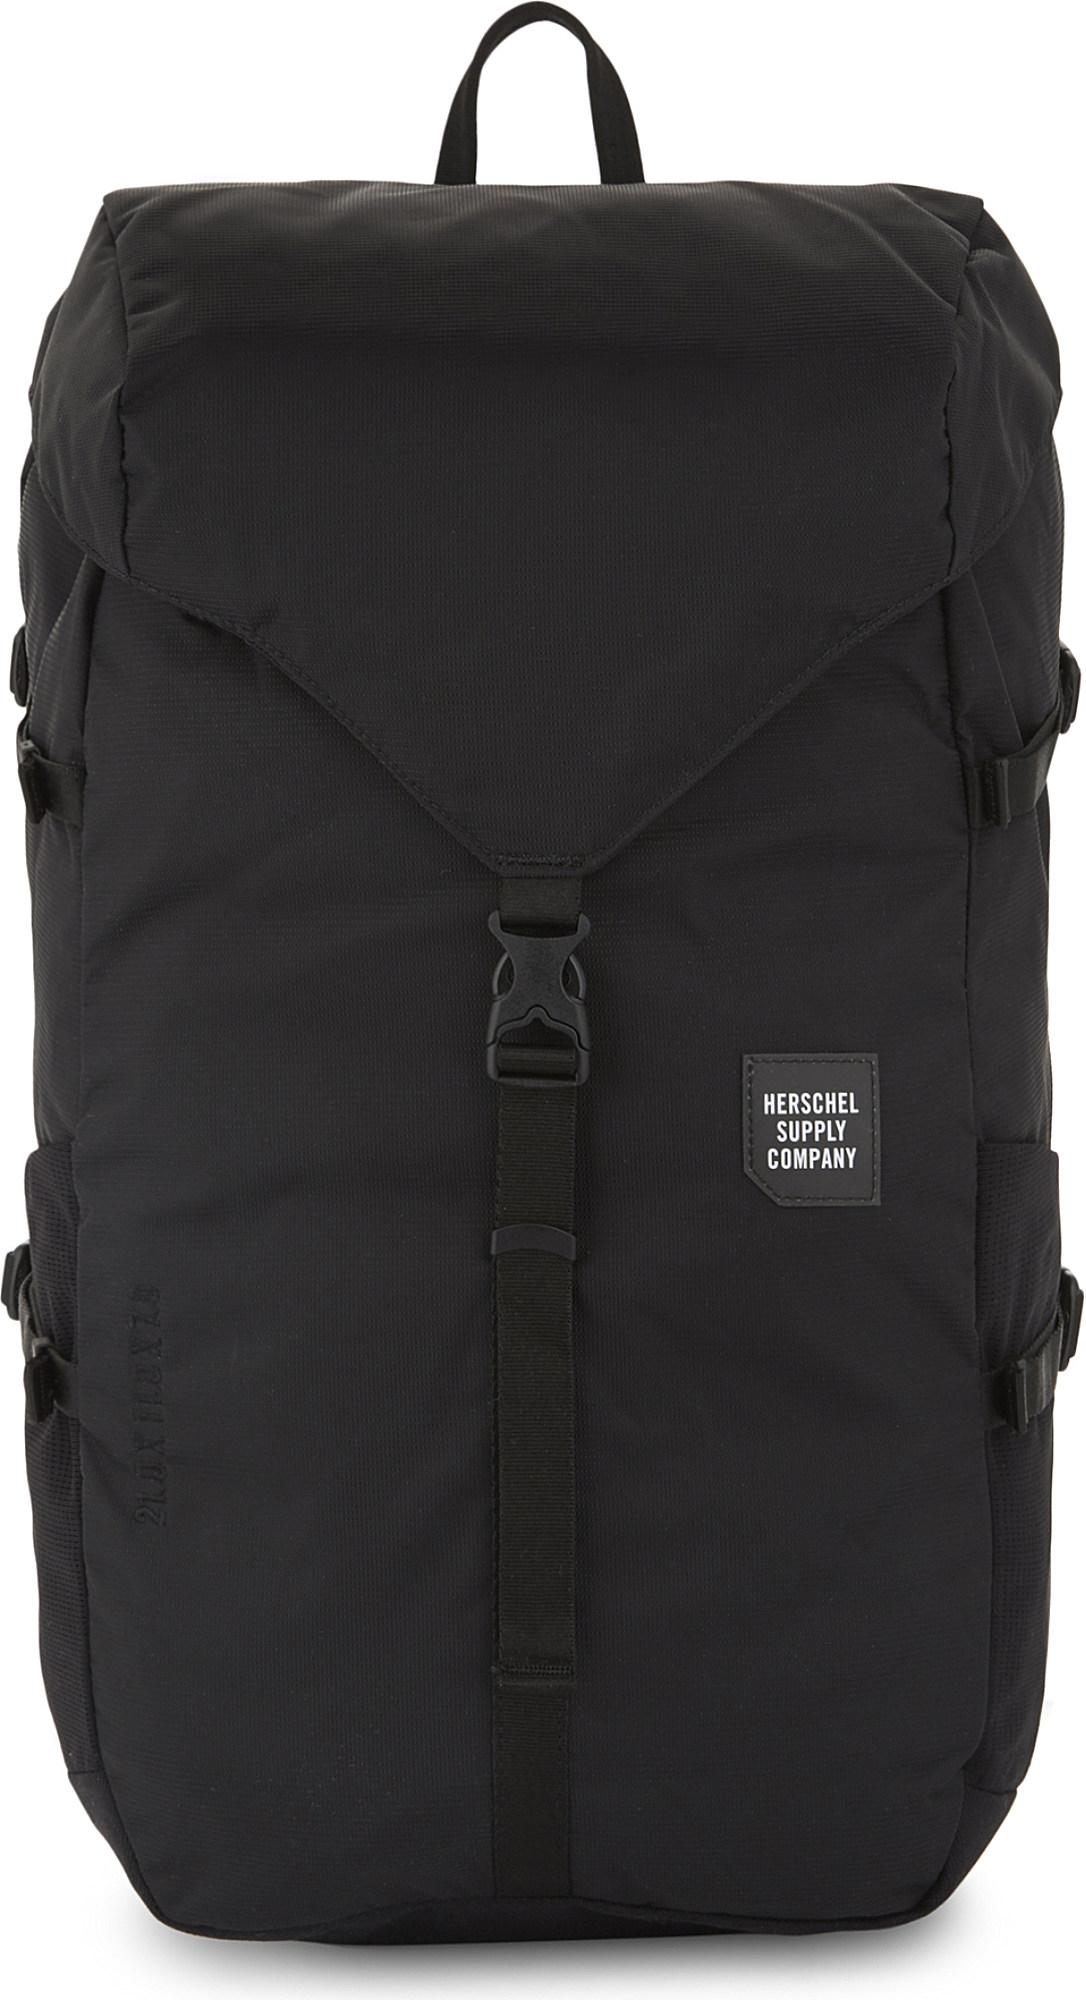 Lyst - Herschel Supply Co. Trail Barlow Large Cordura® Backpack in ... 5ed5995ae4e18